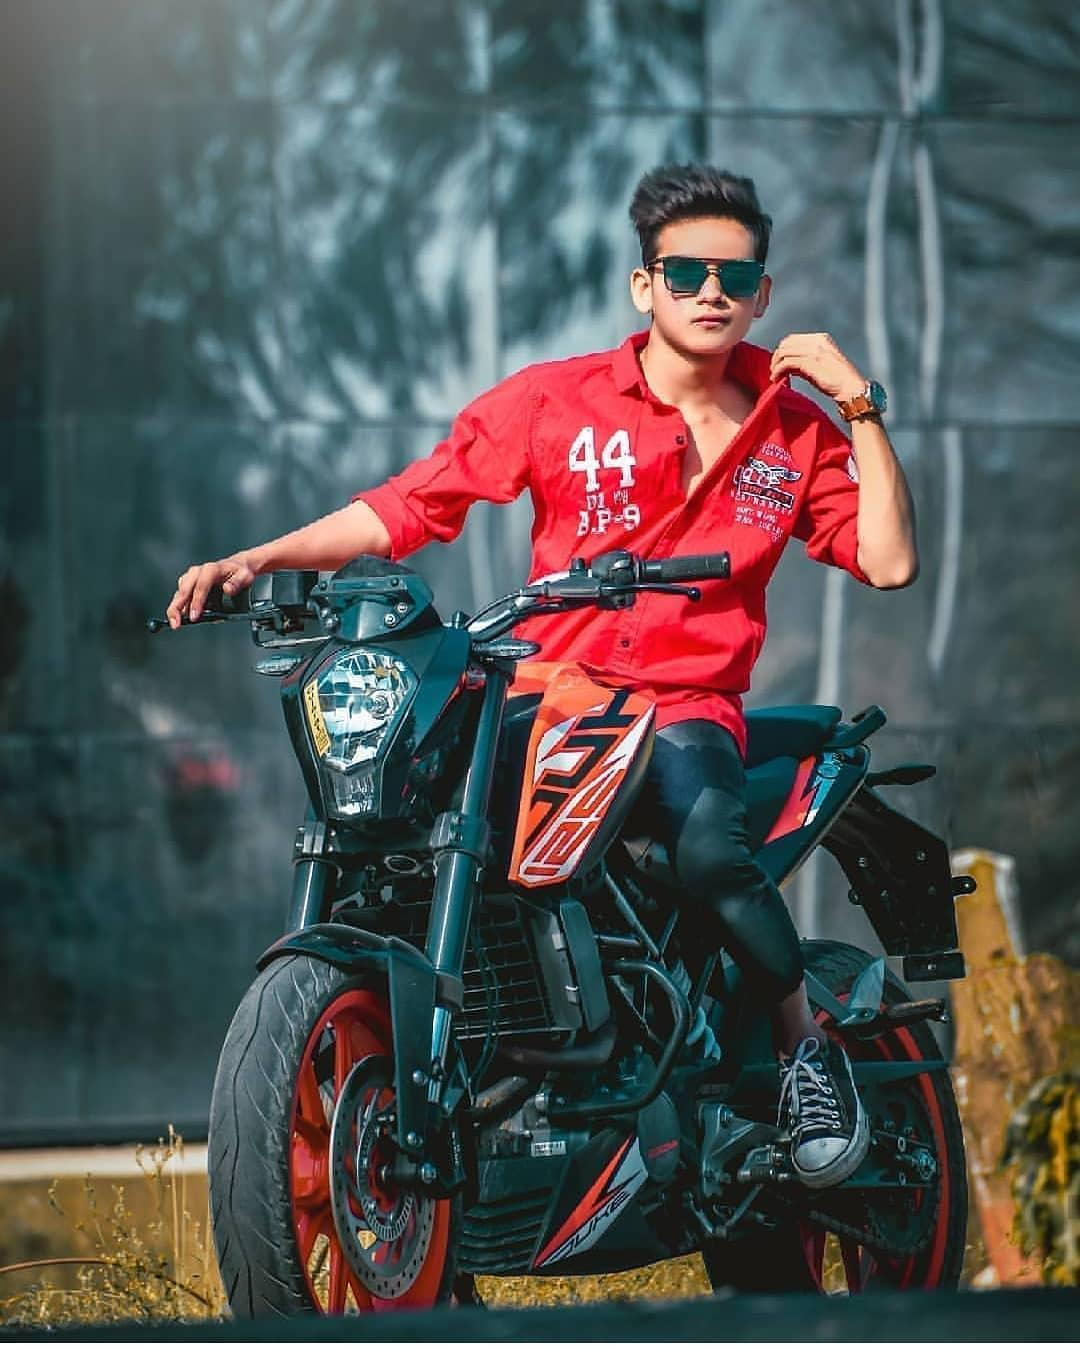 Photo Pose For Boys Photography 2020 For Android Apk Download